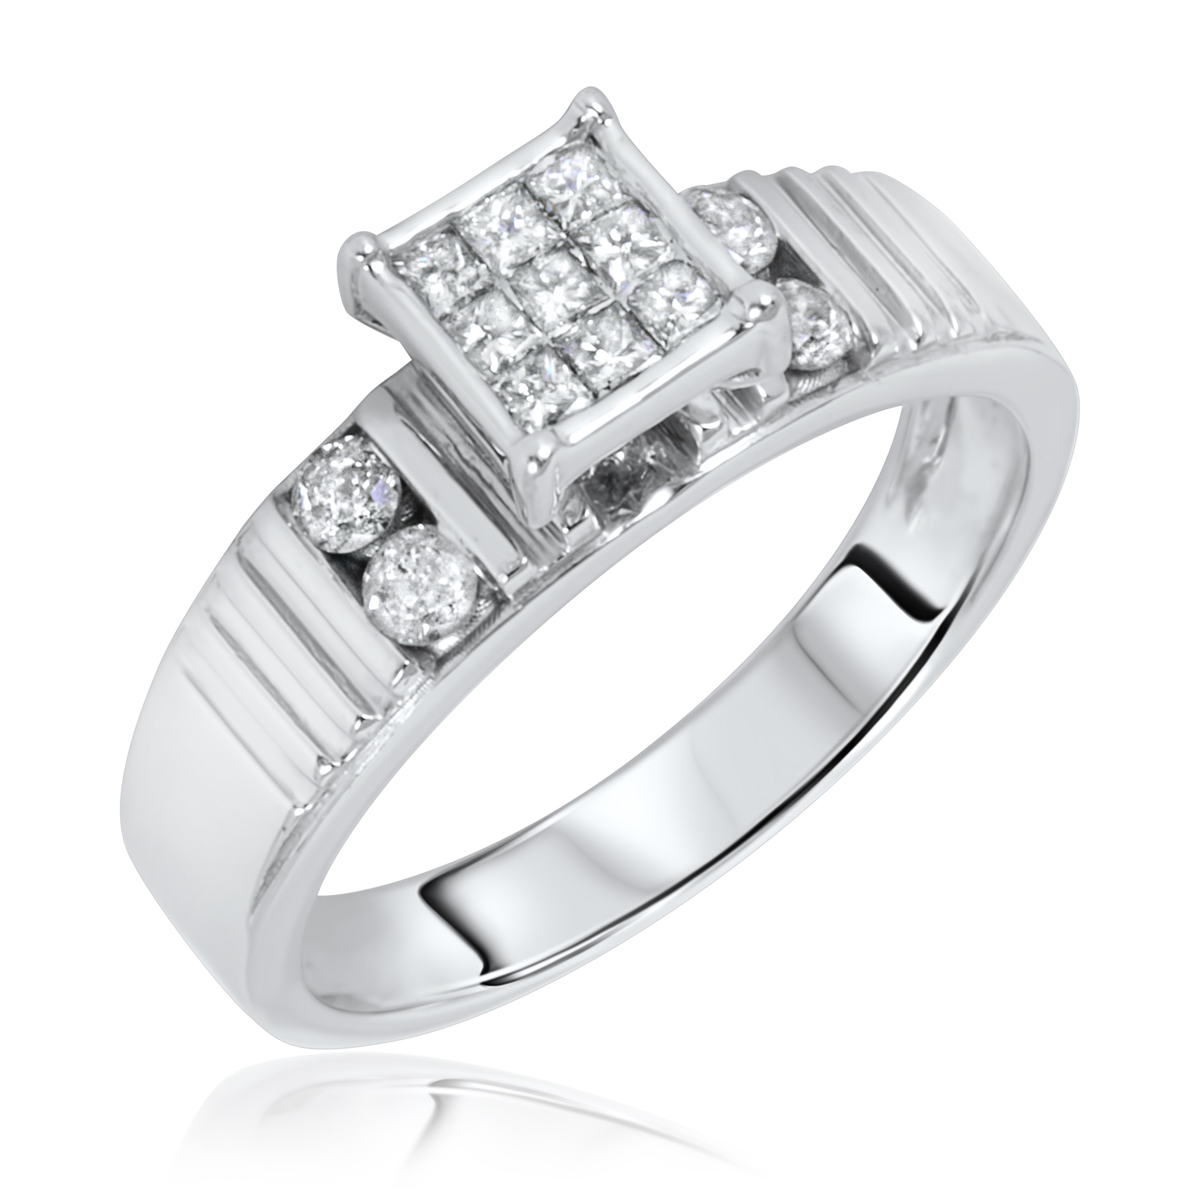 Women39;s Engagement Ring 14K White Gold  My Trio Rings  BT143W14KE